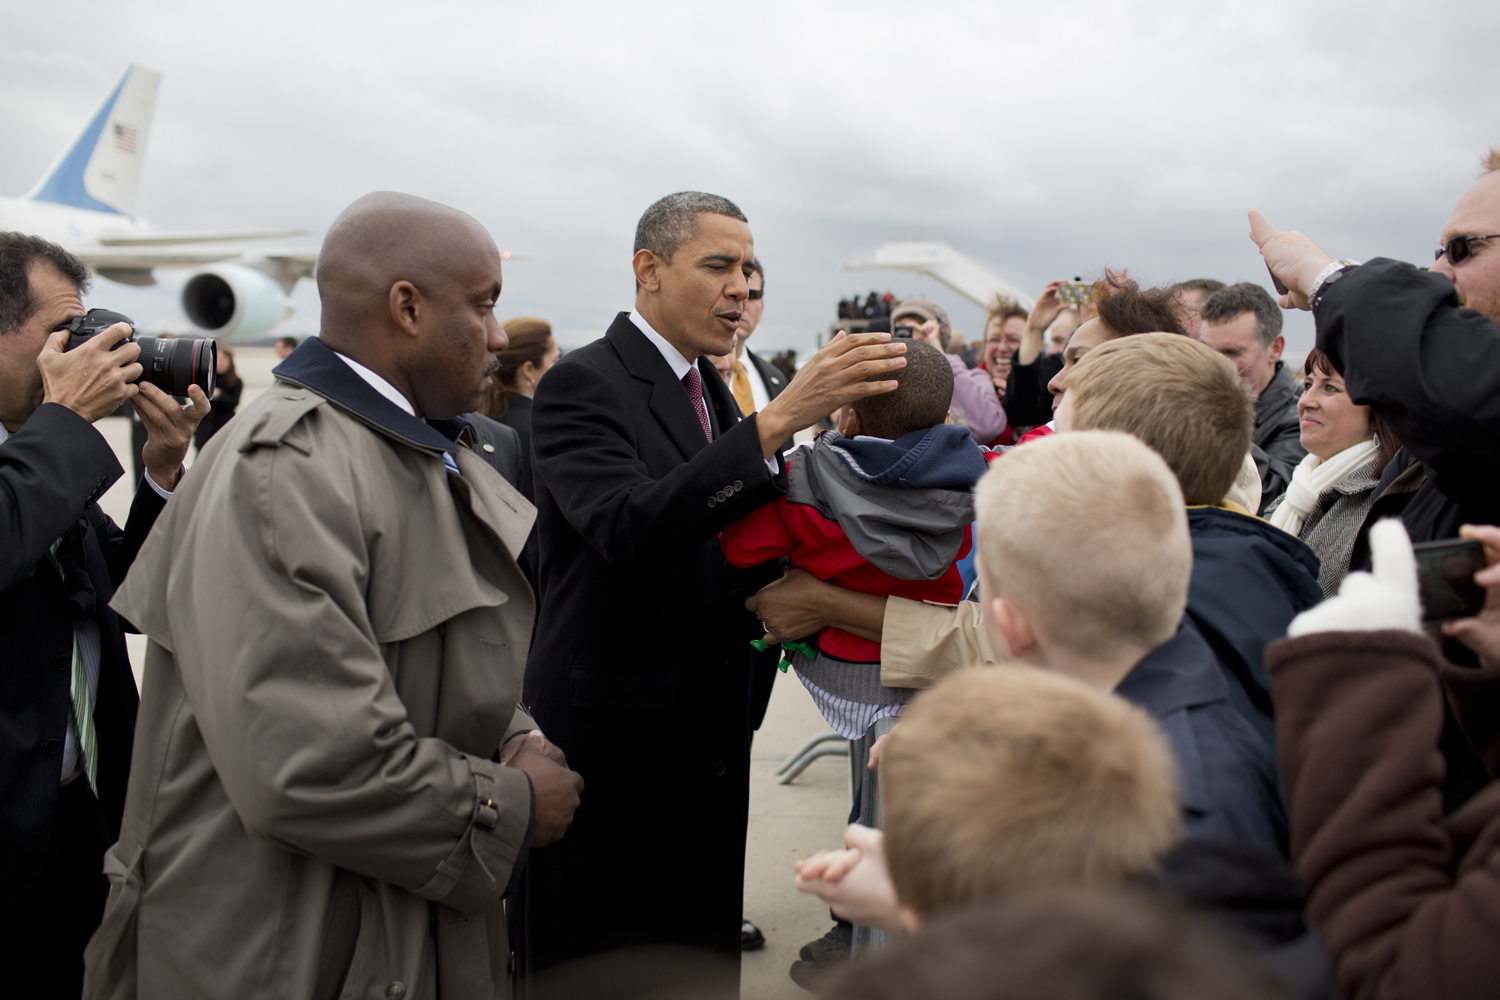 Arriving at the airport in Redford, Mich., Obama greets local officials and a small crowd on the tarmac.